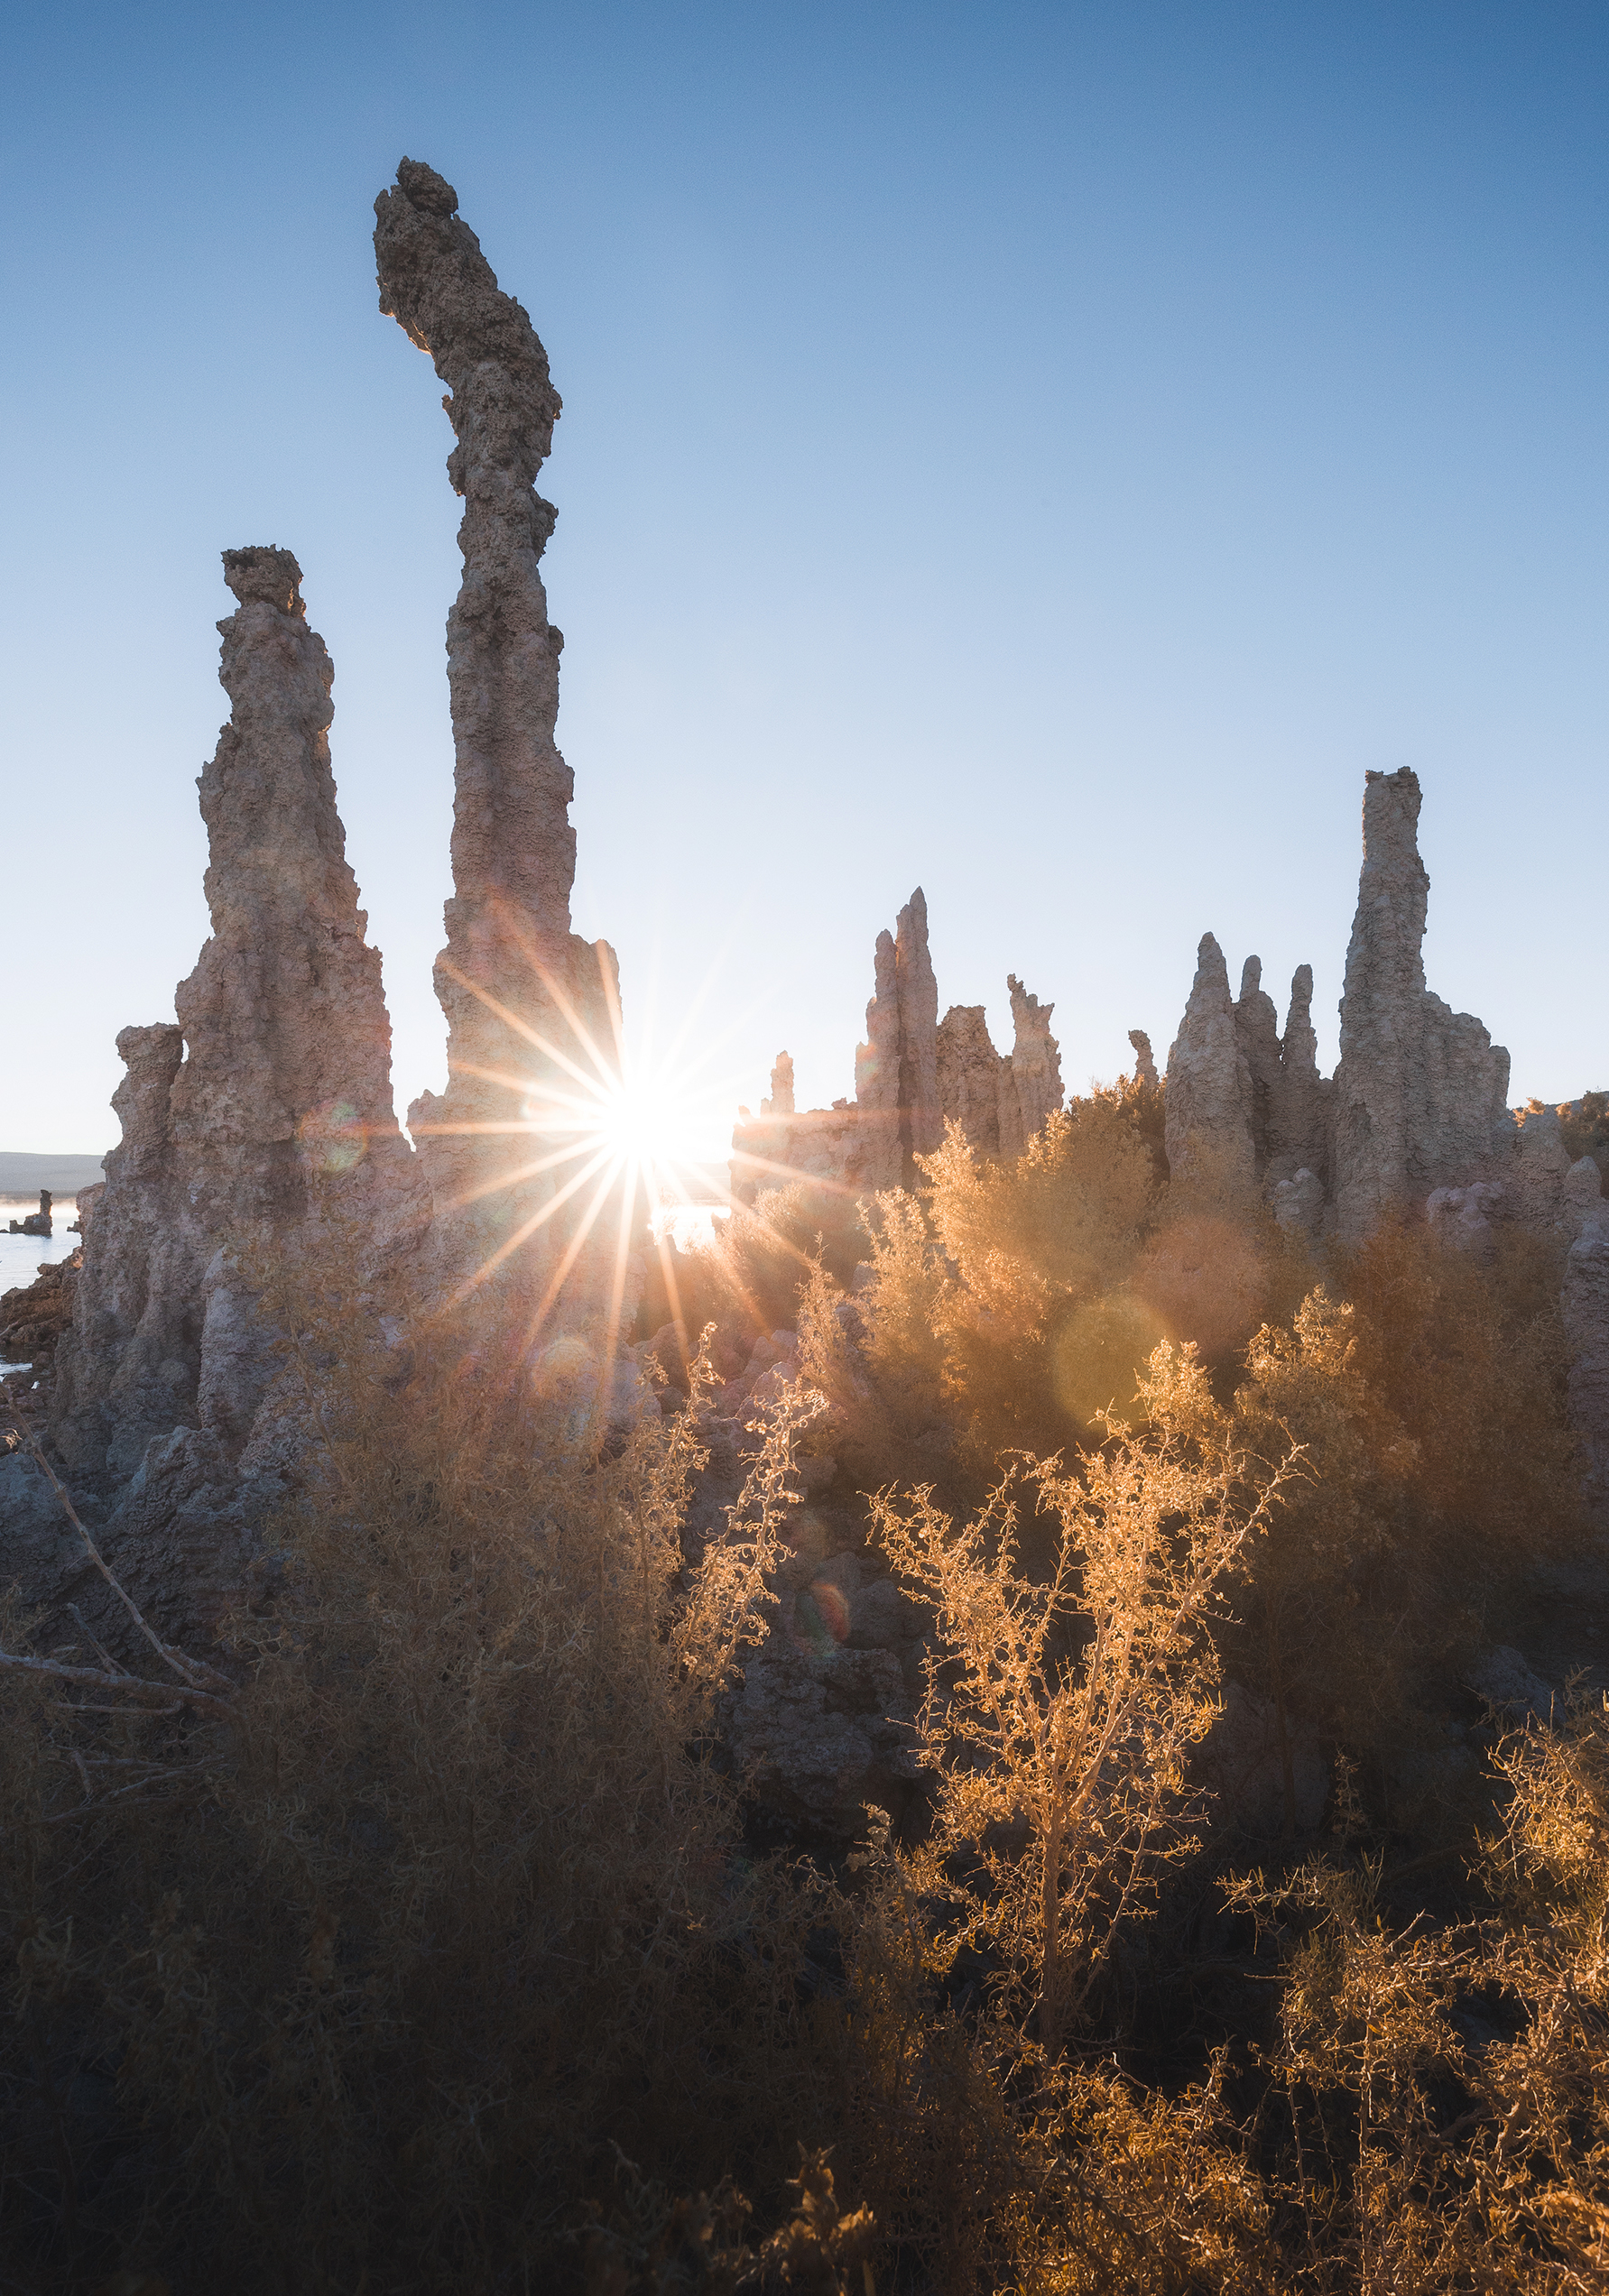 The tufa formations at sunrise